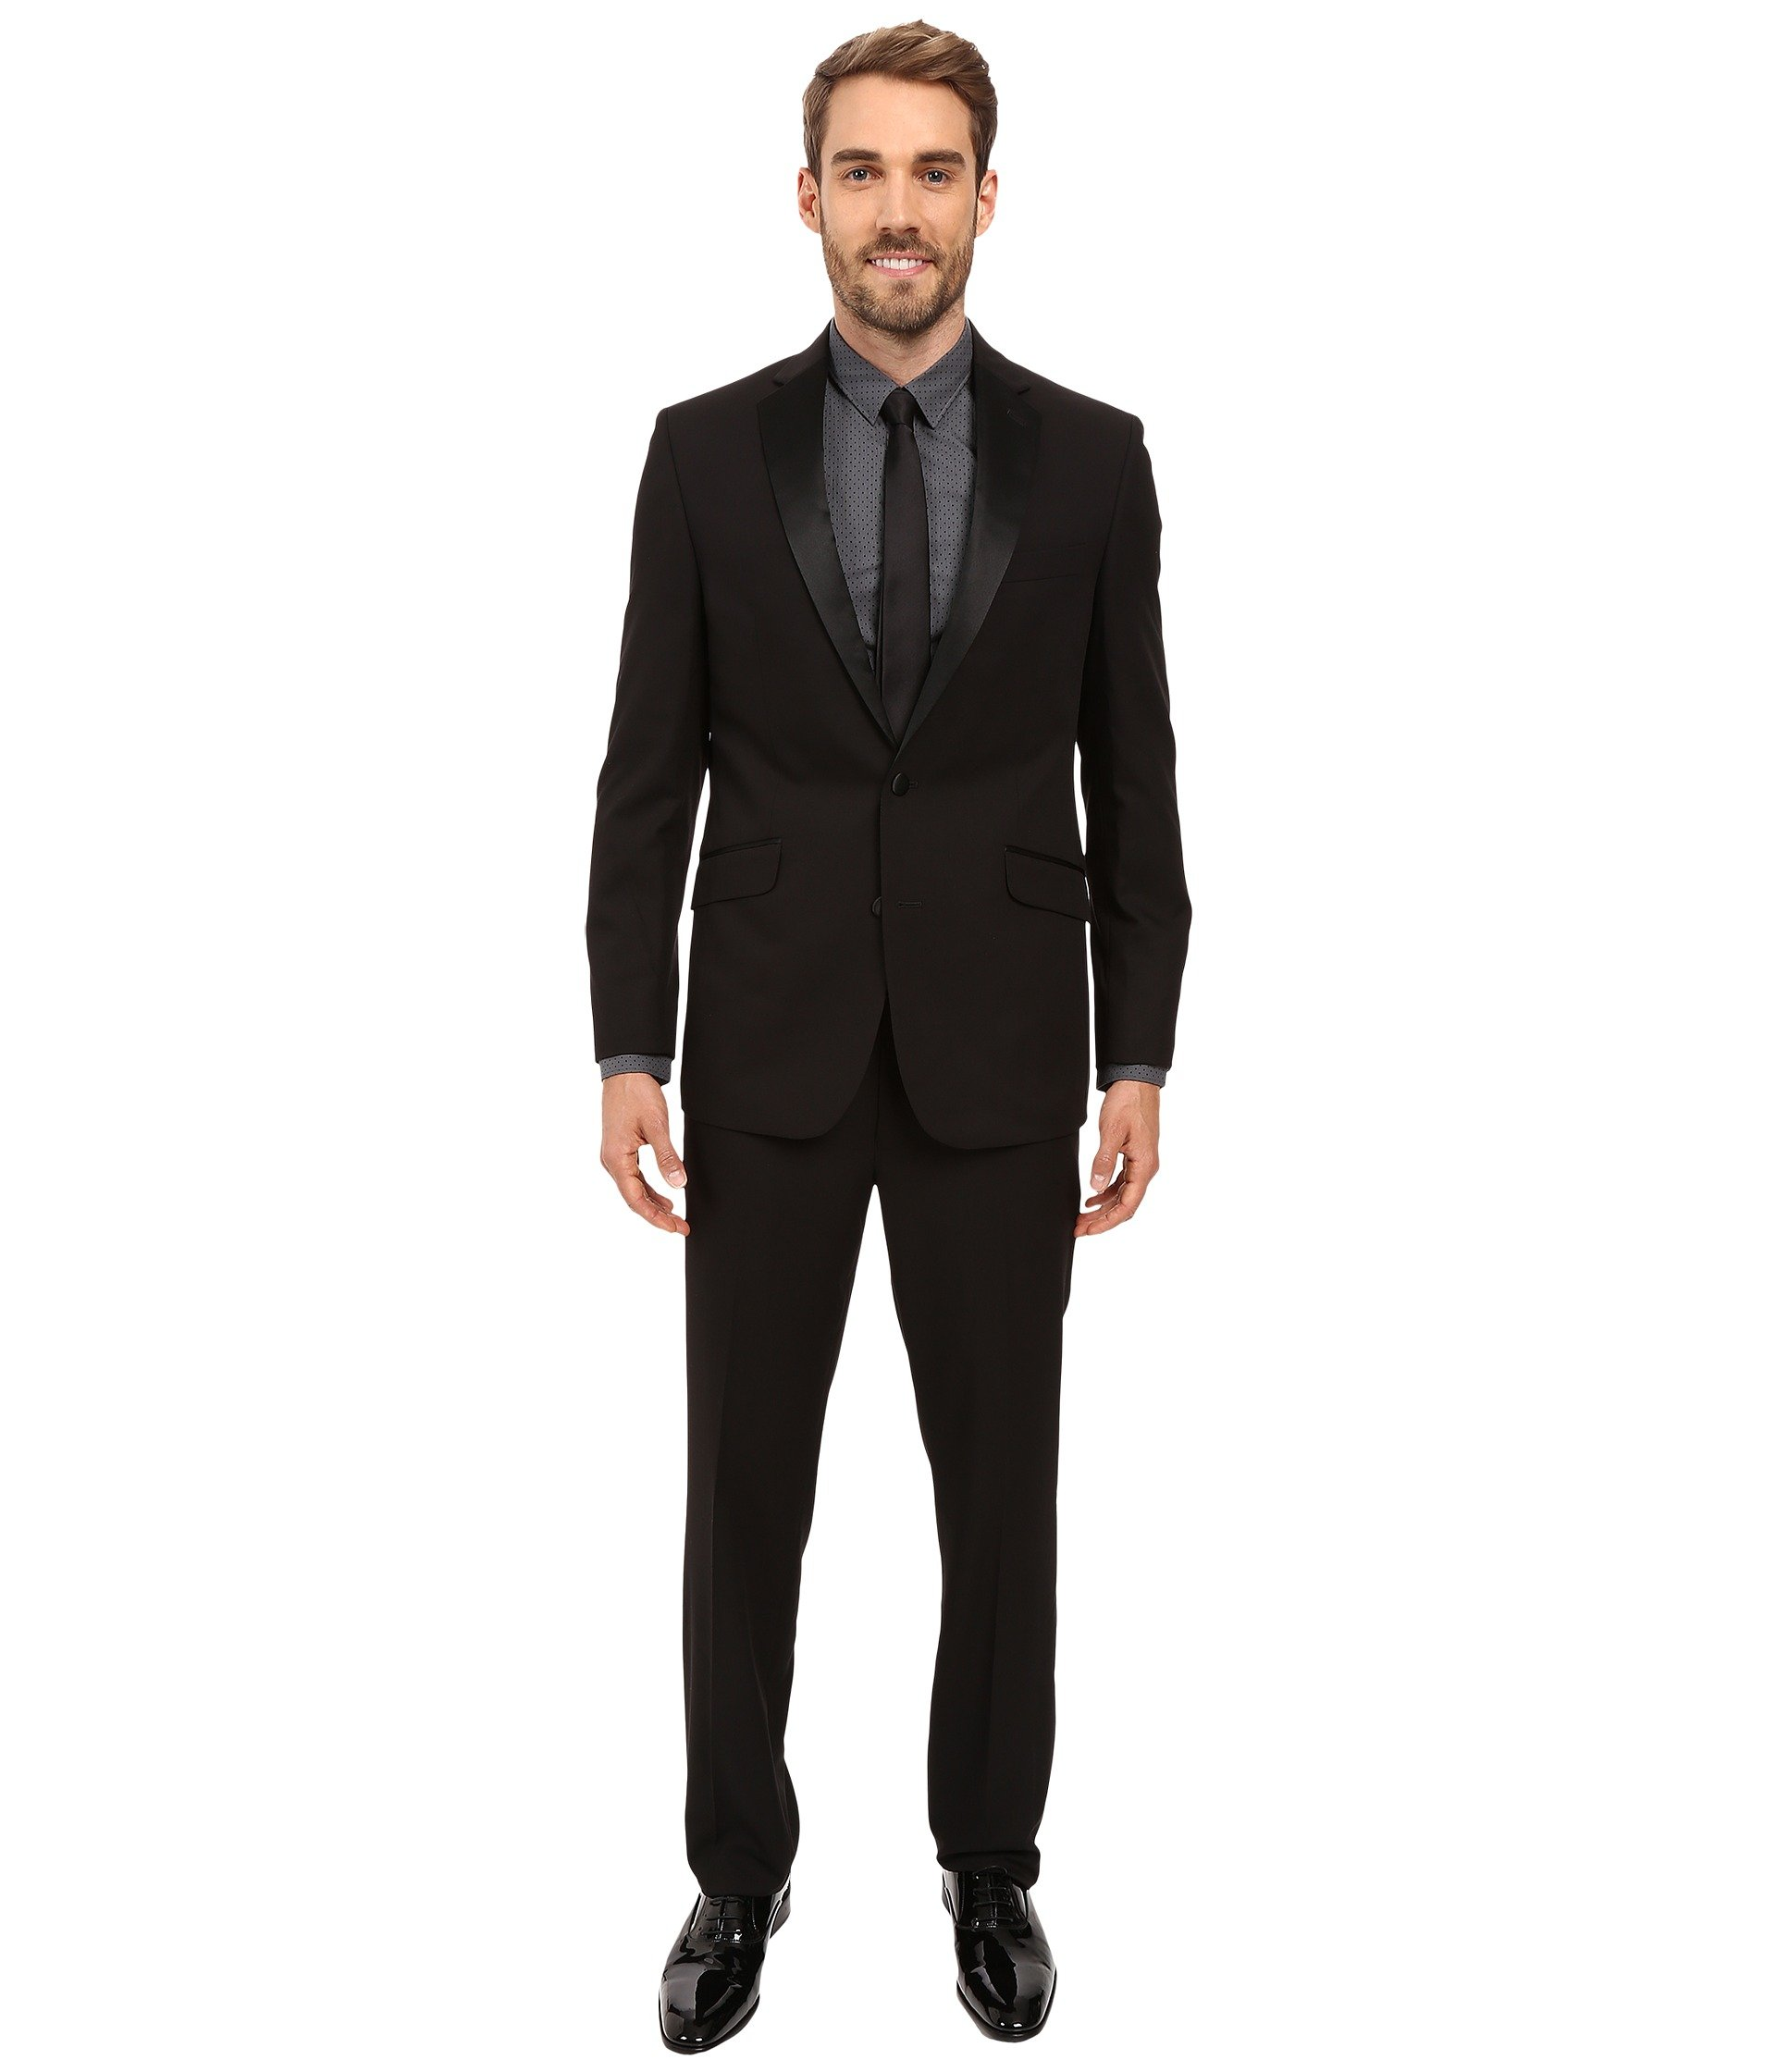 Vestido para Hombre Kenneth Cole Reaction Slim Fit Tuxedo  + Kenneth Cole Reaction en VeoyCompro.net